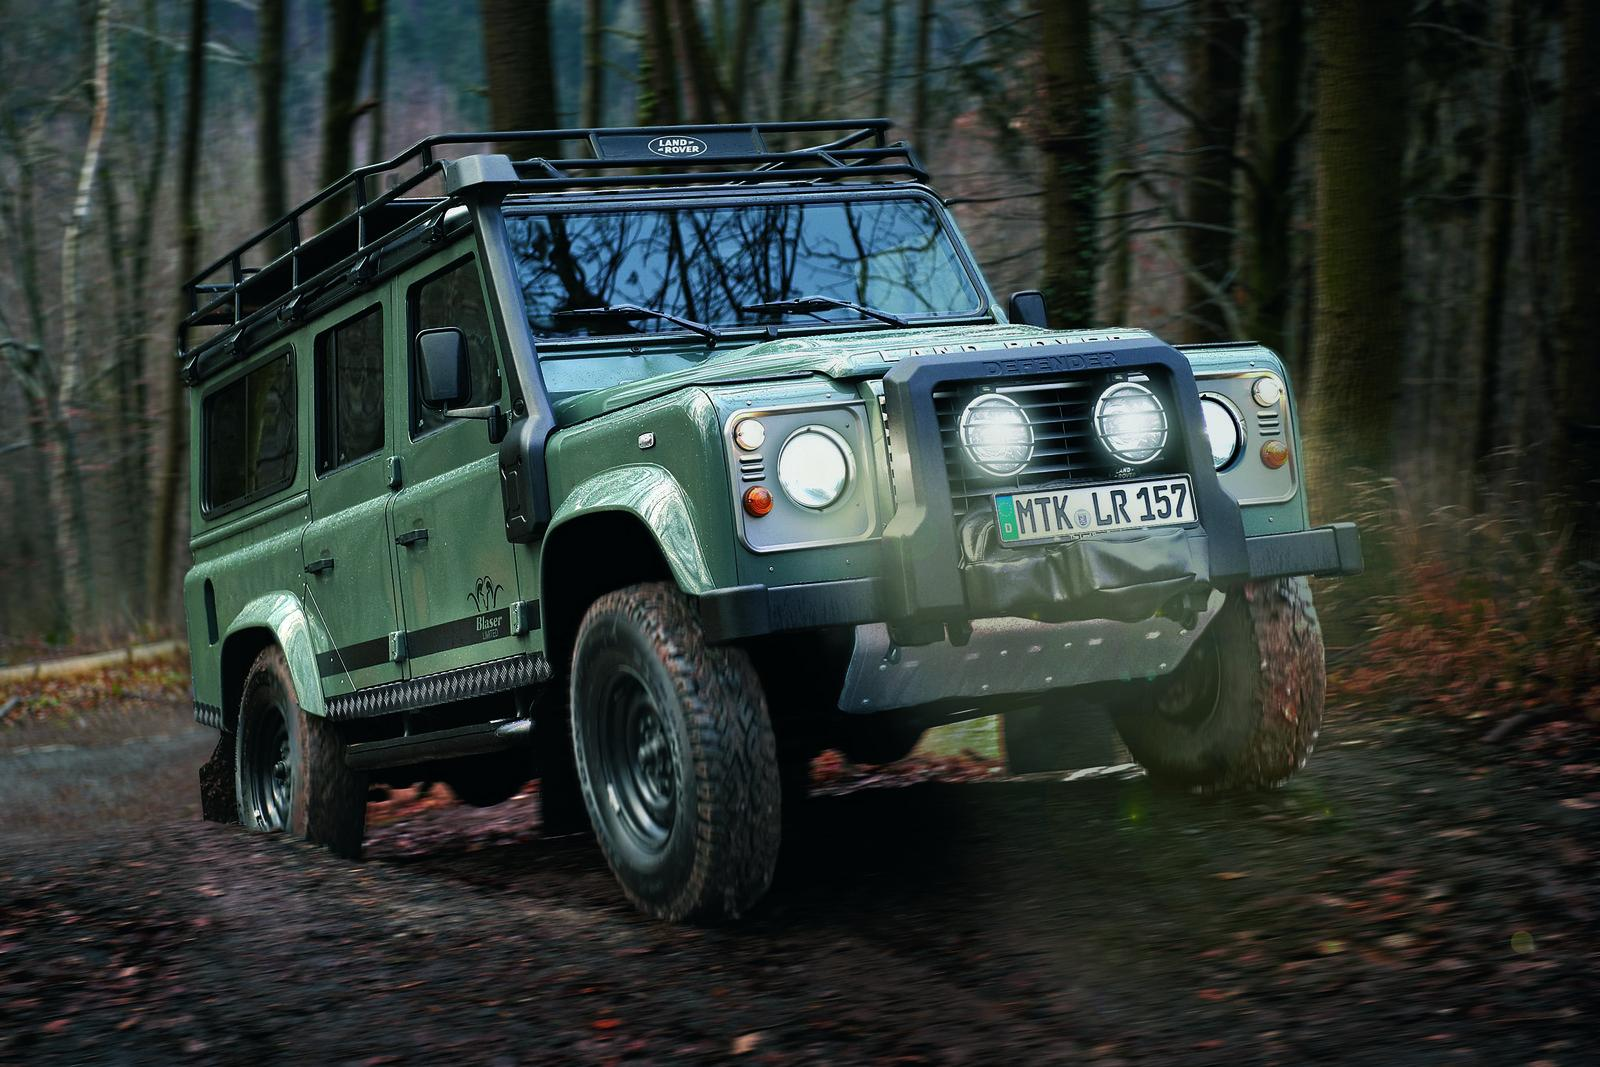 2012 Land Rover Defender Blaser Edition Revealed